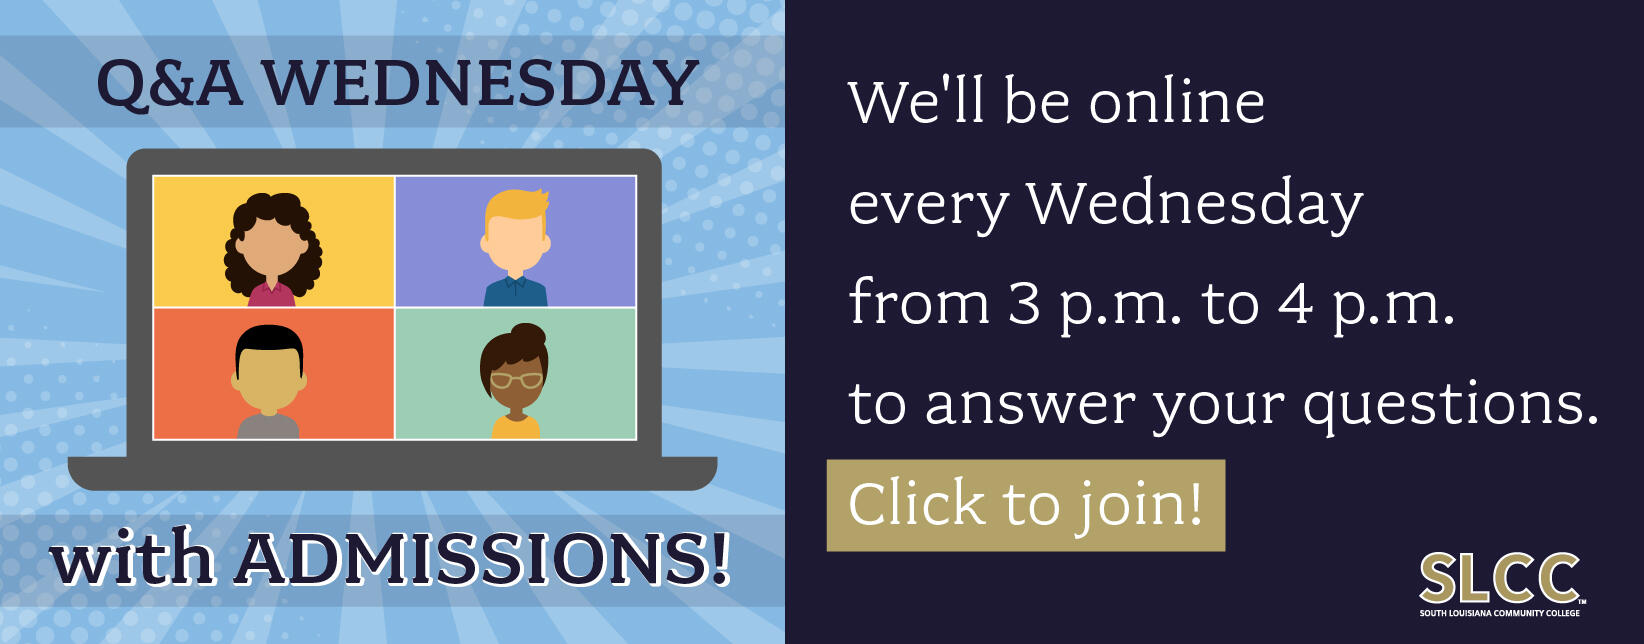 Q&A with Admissions on Wednesdays from 3-4pm